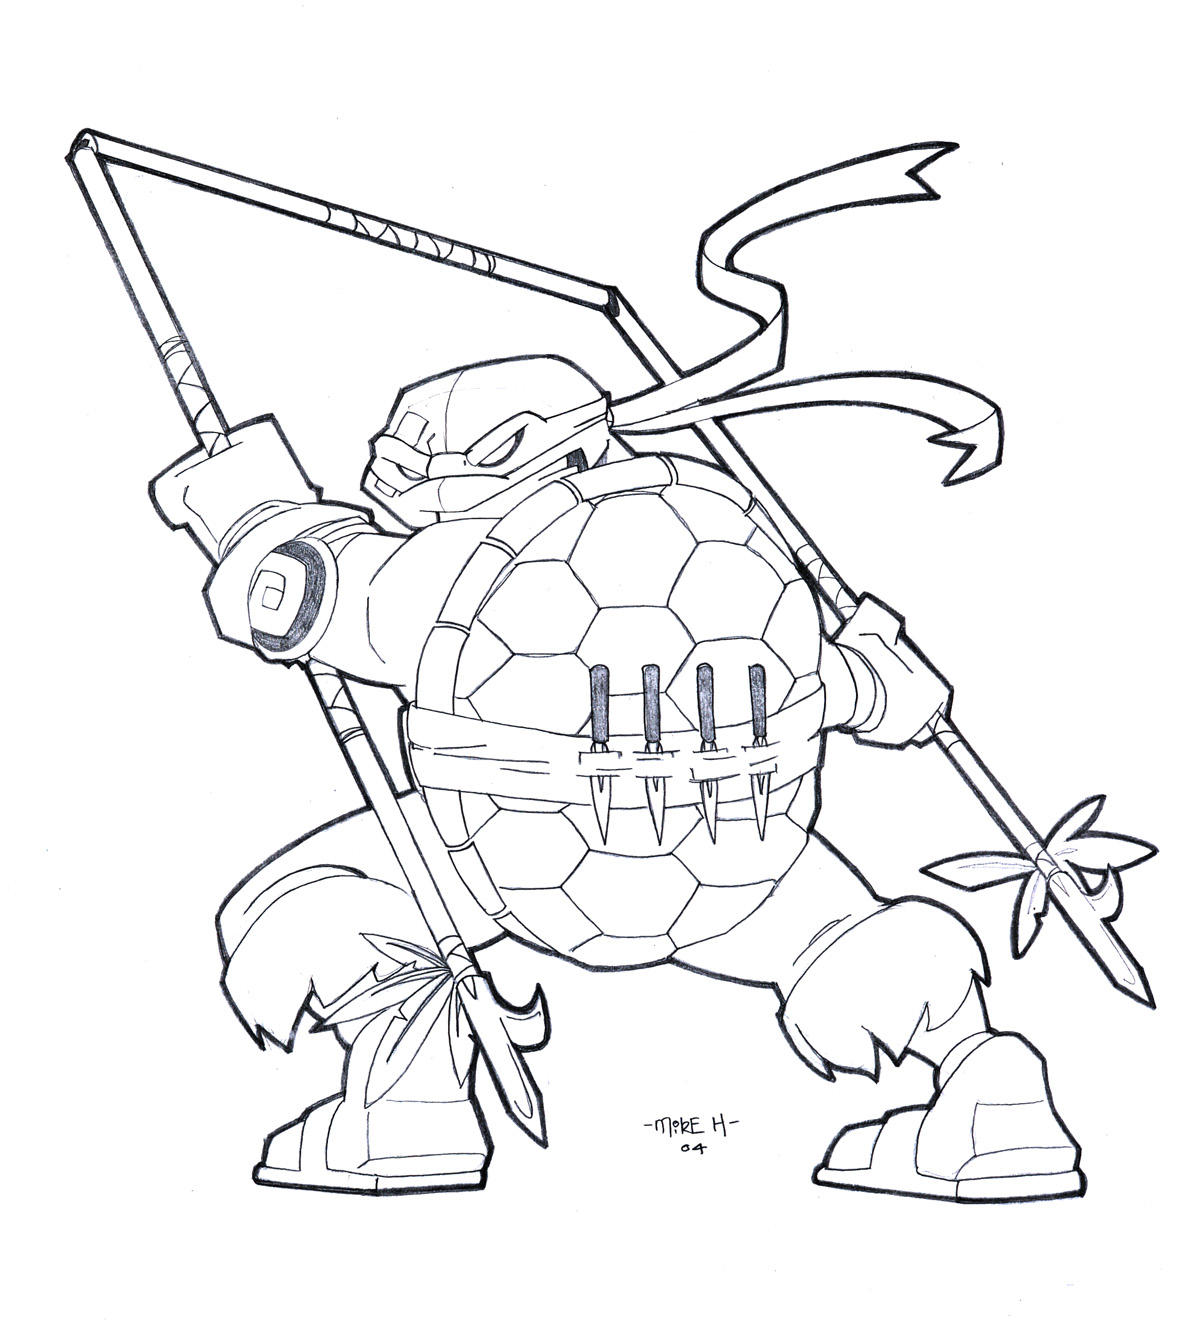 salvador the 5th ninja turtle by tyrannus on deviantart